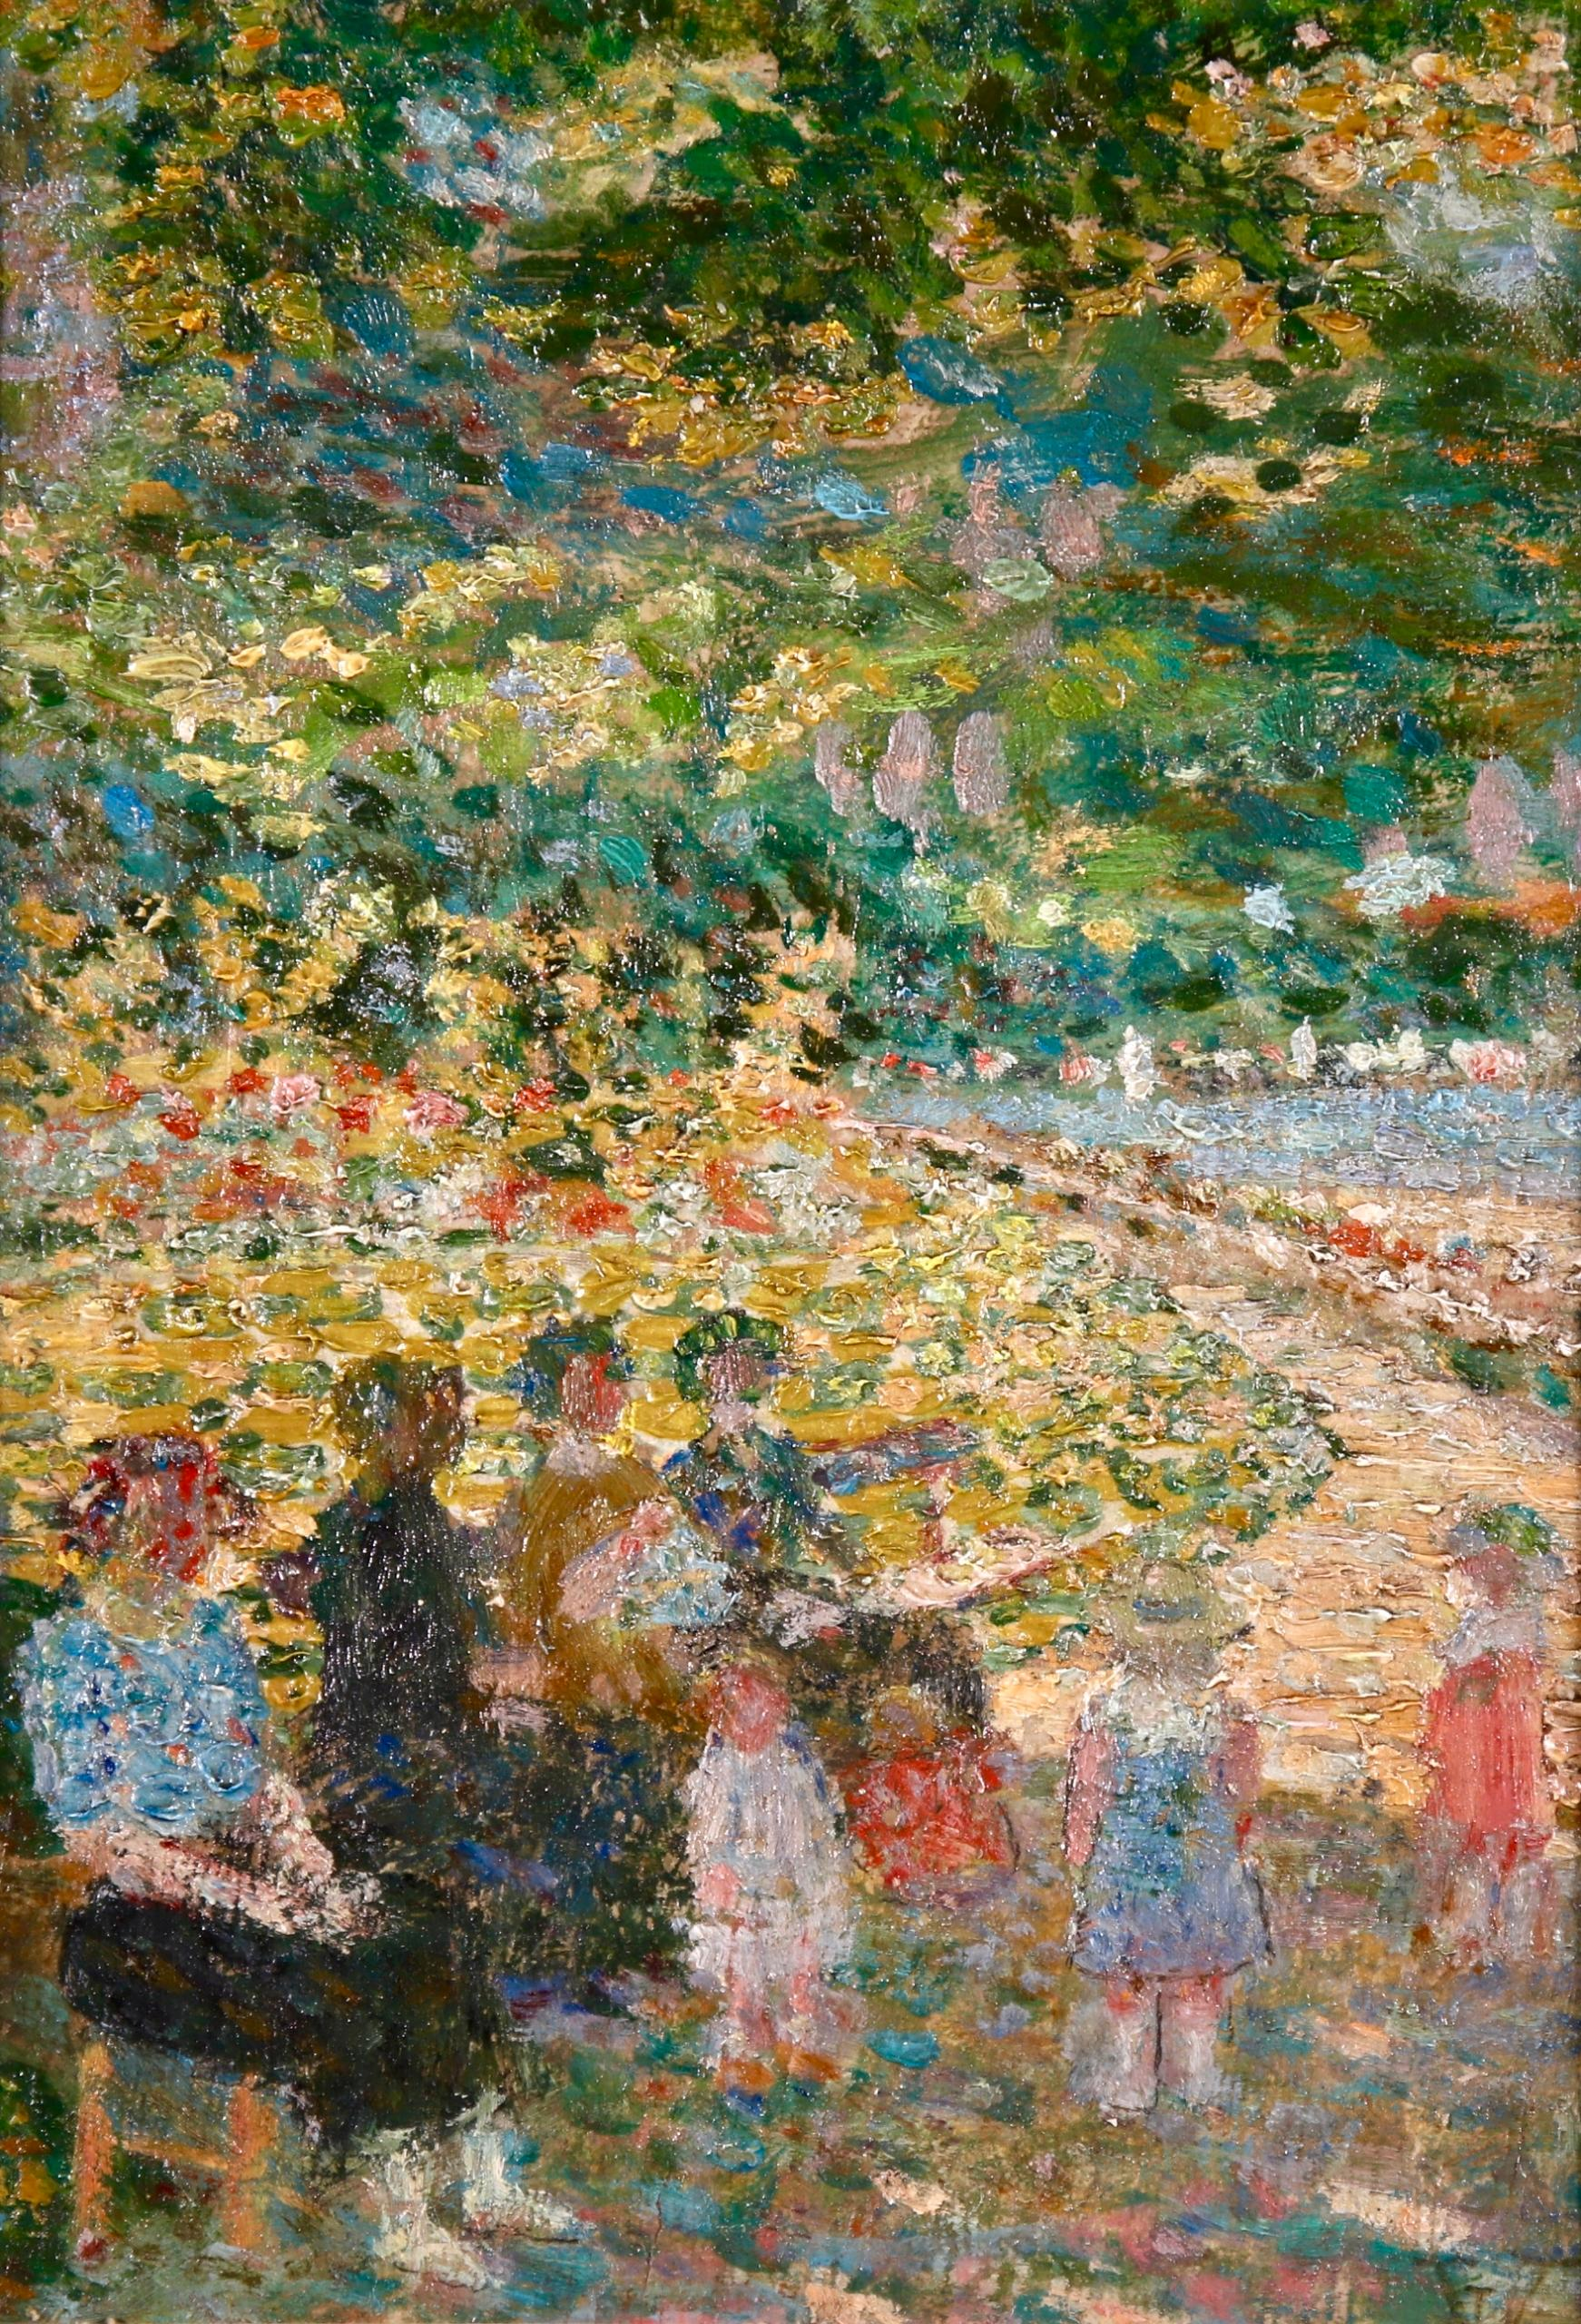 Mothers & Children - Impressionist Oil, Figures in Landscape by Ludovic Vallee